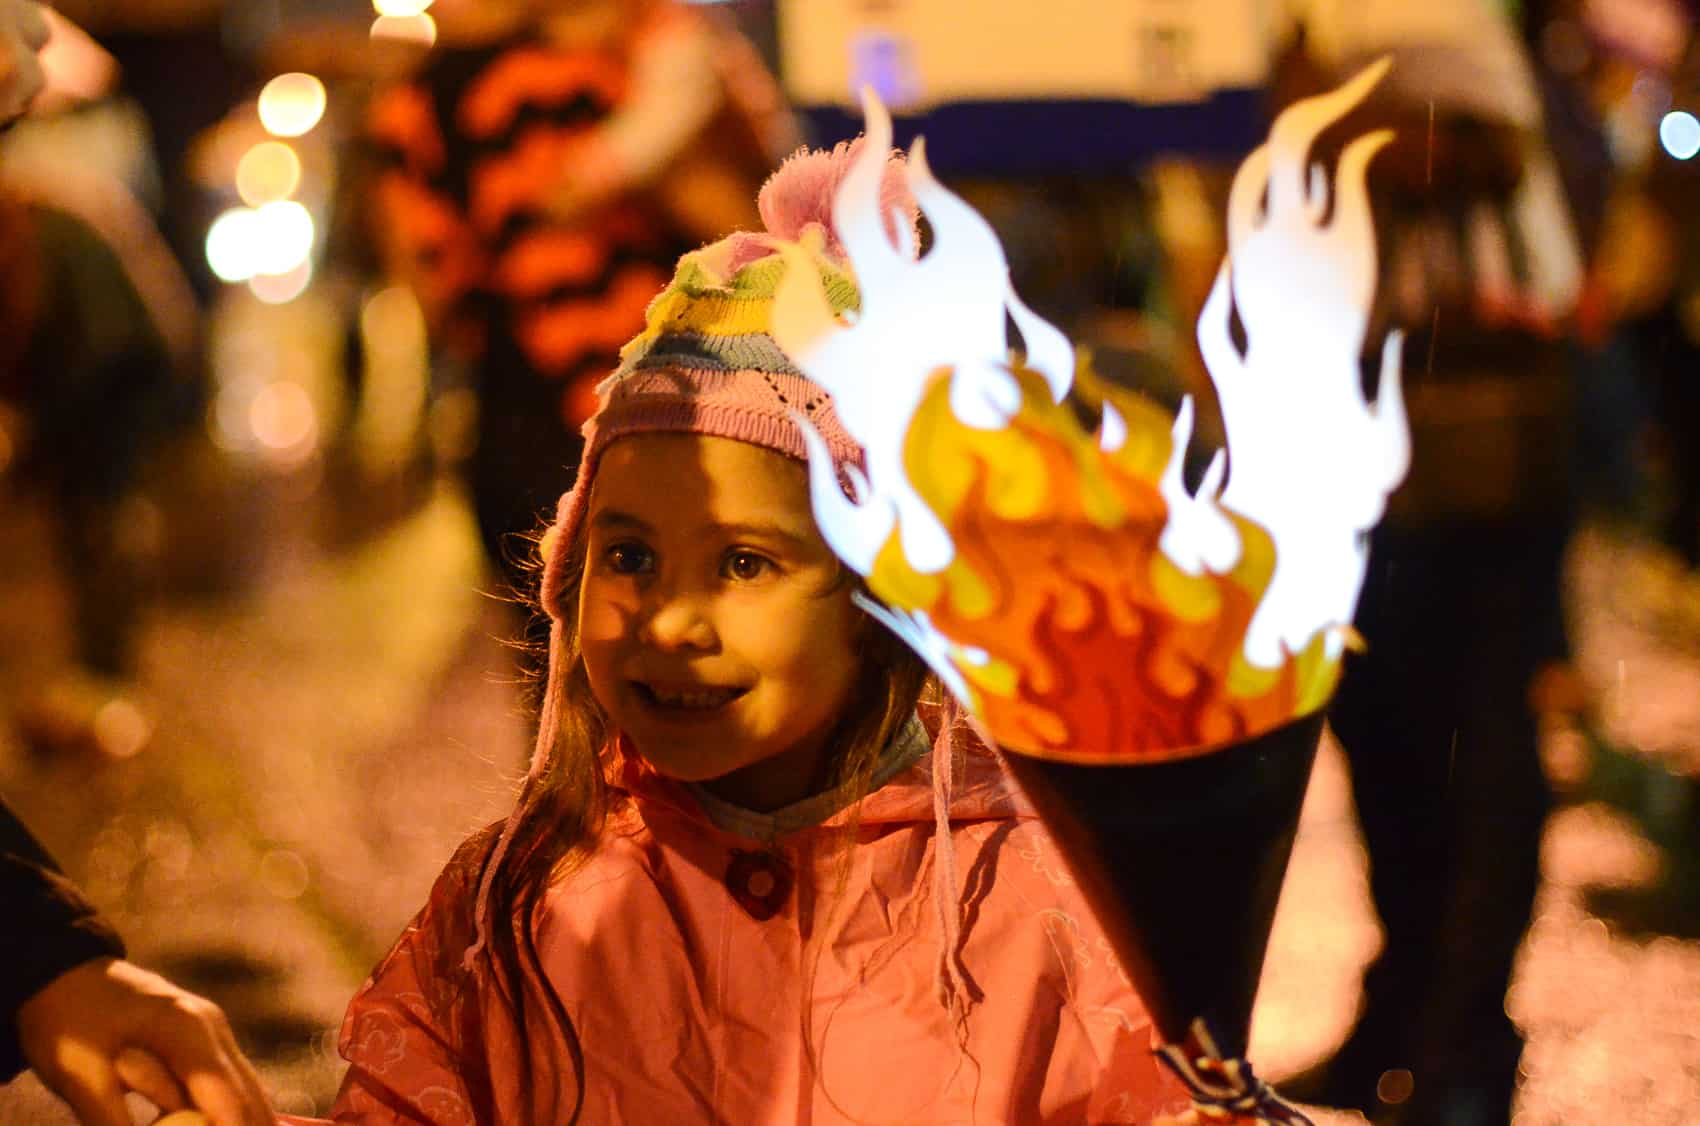 Each year on Sept. 14, just after dark on the eve of Independence Day, Costa Rican kids parade their homemade lanterns in towns and cities across the country.